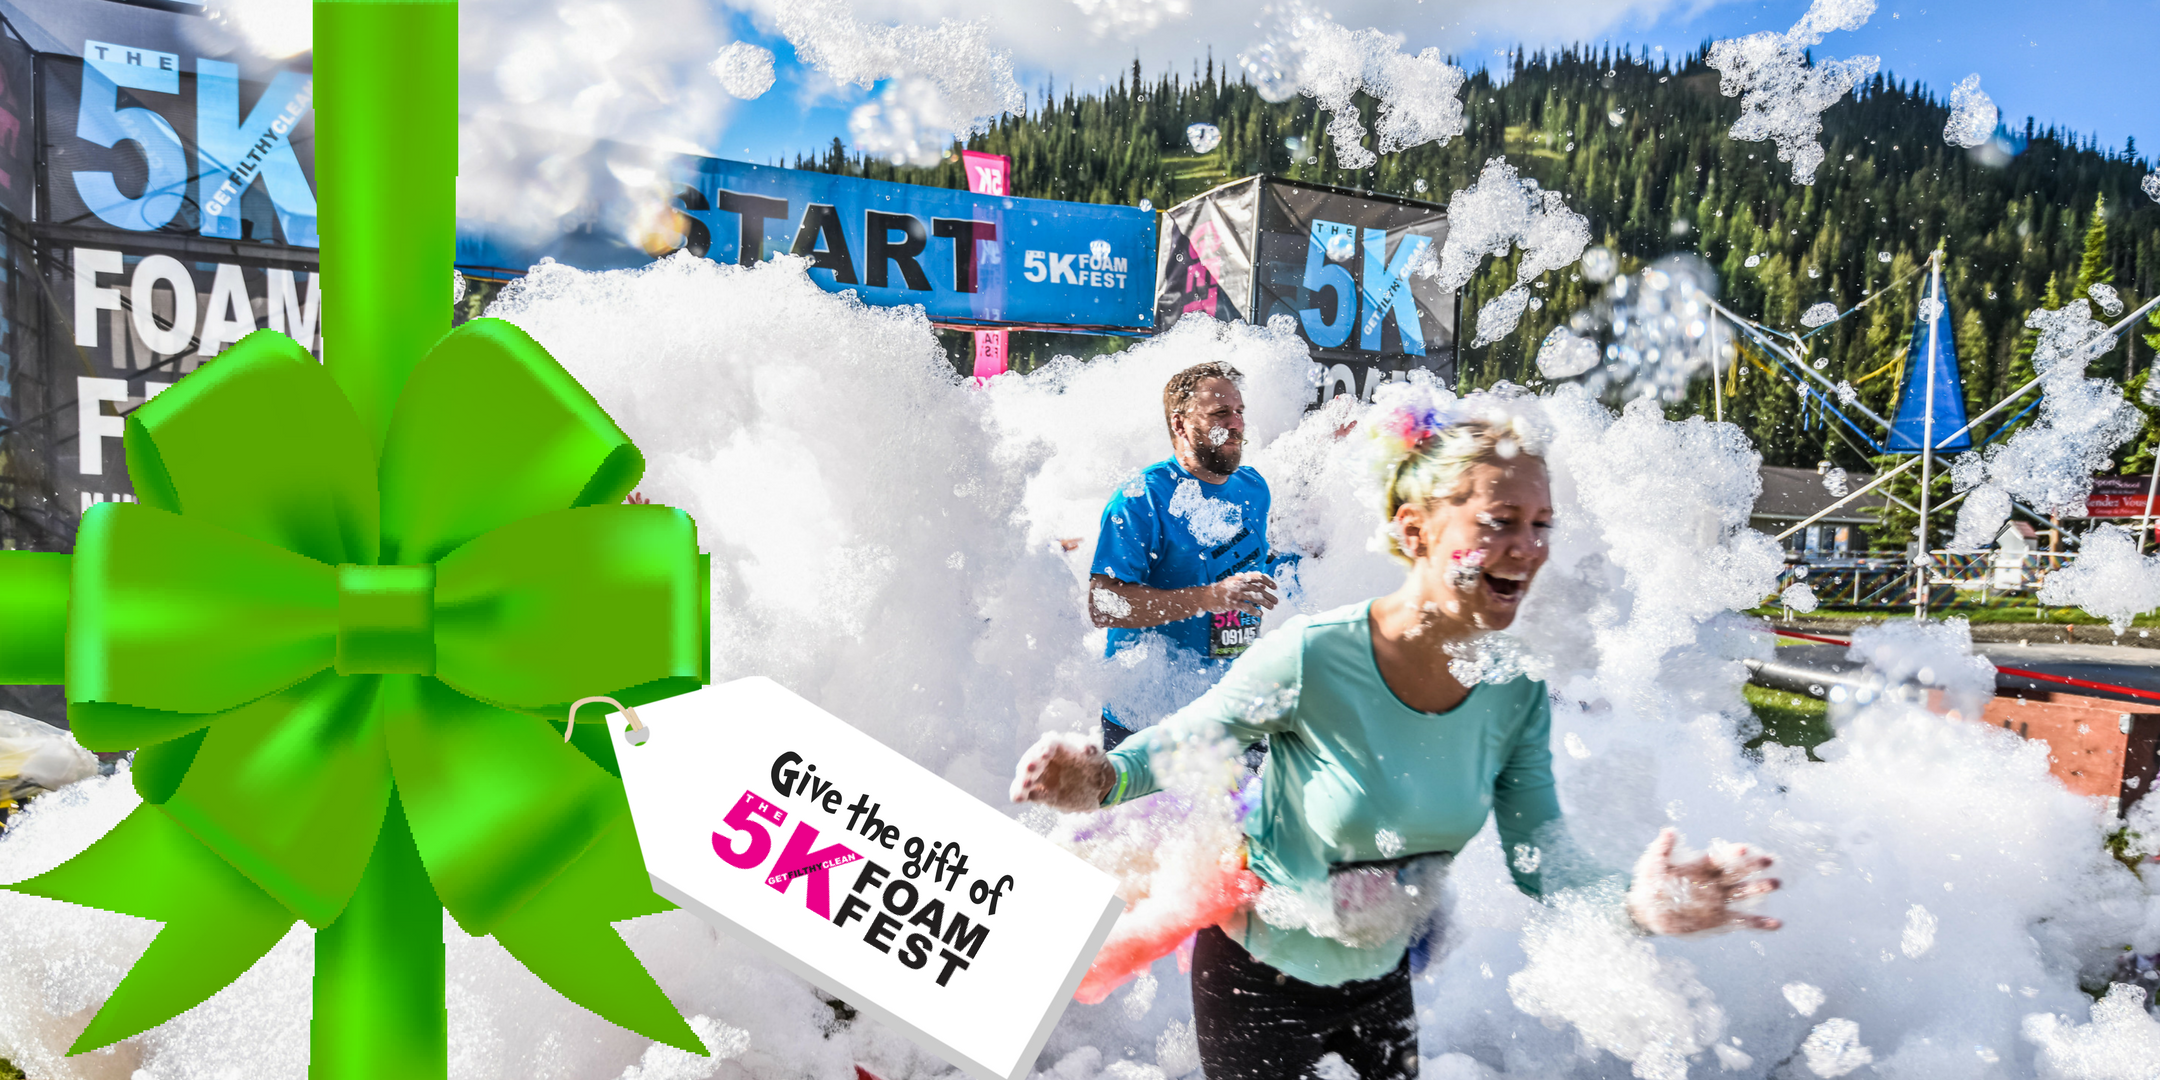 THE 5K FOAM FEST TEMECULA, CA May 5, 2018